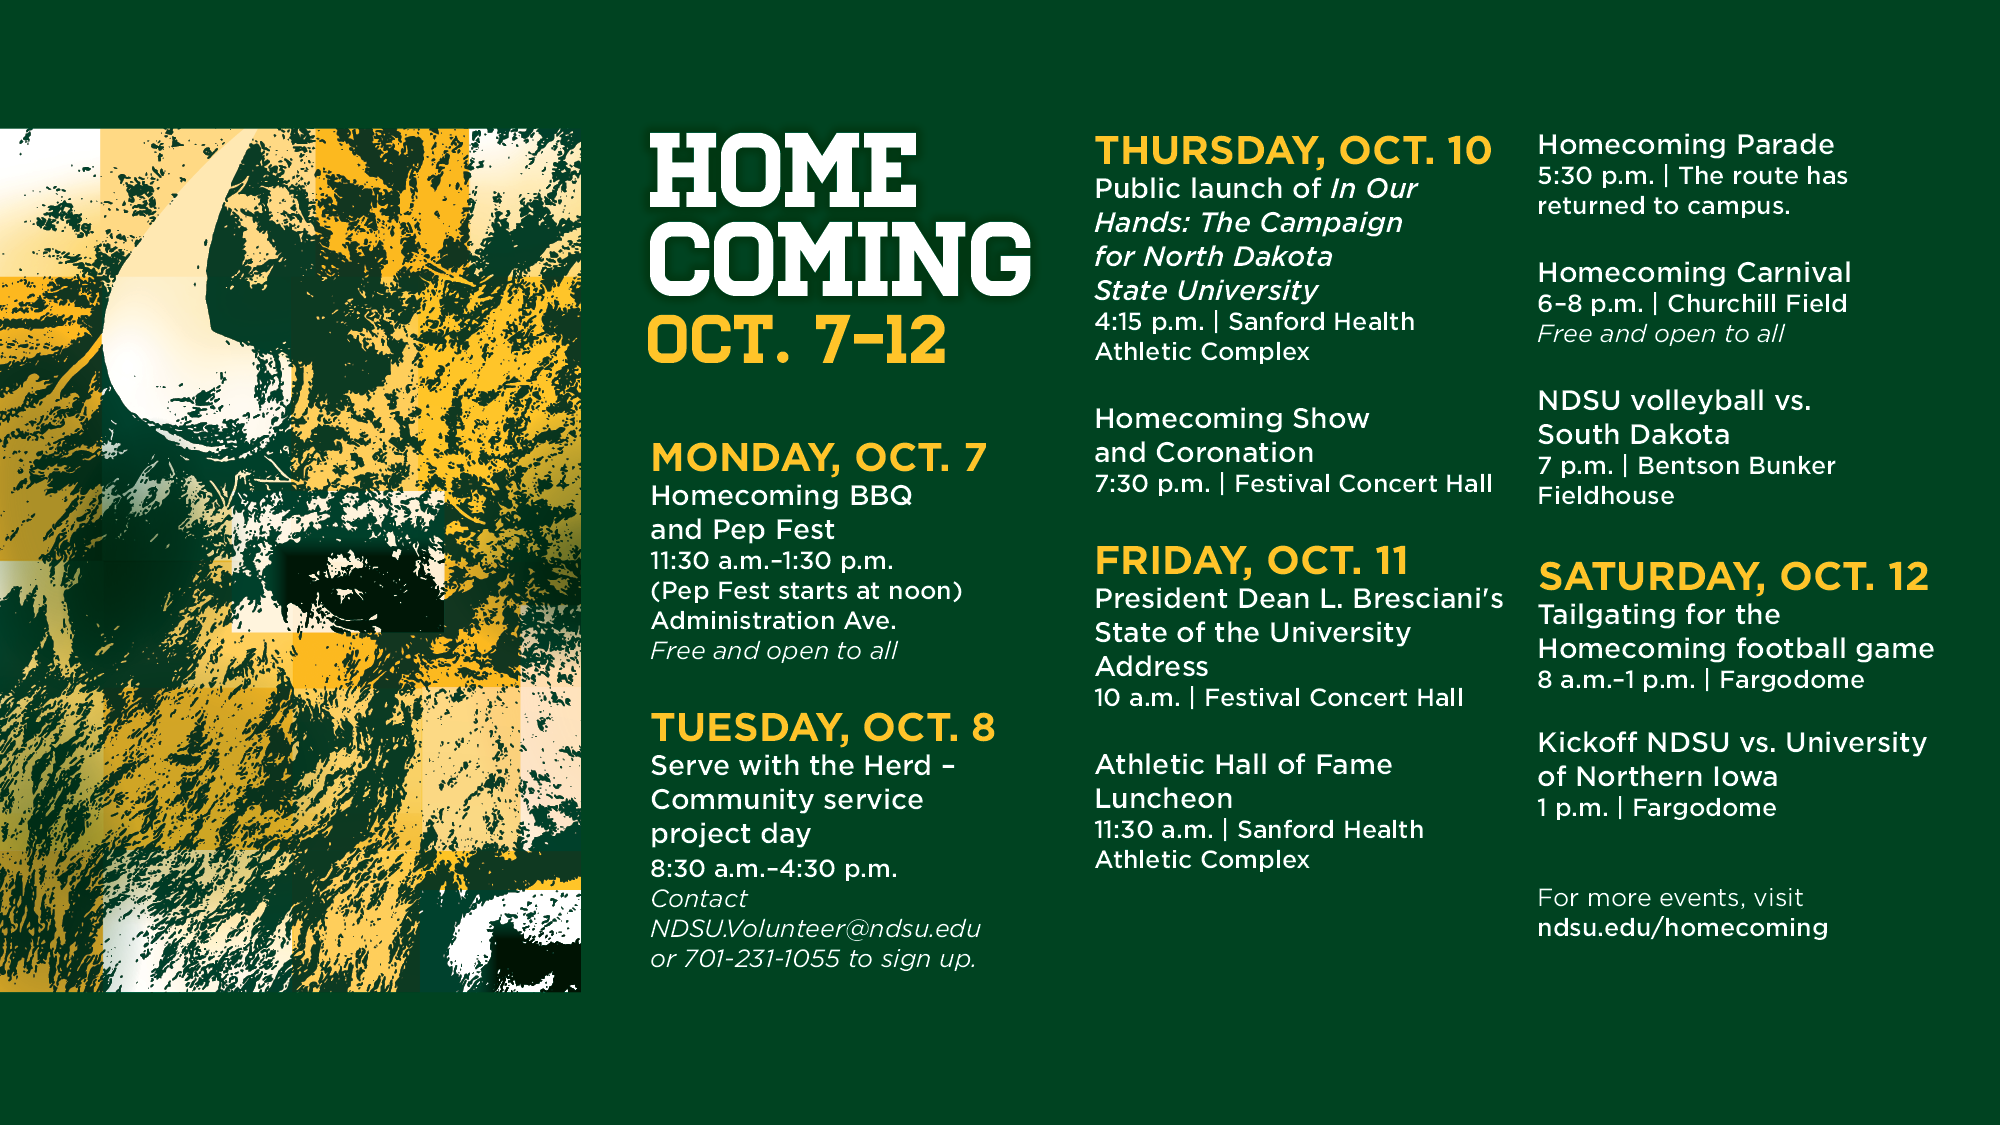 ndsu homecoming 2019 schedule of events